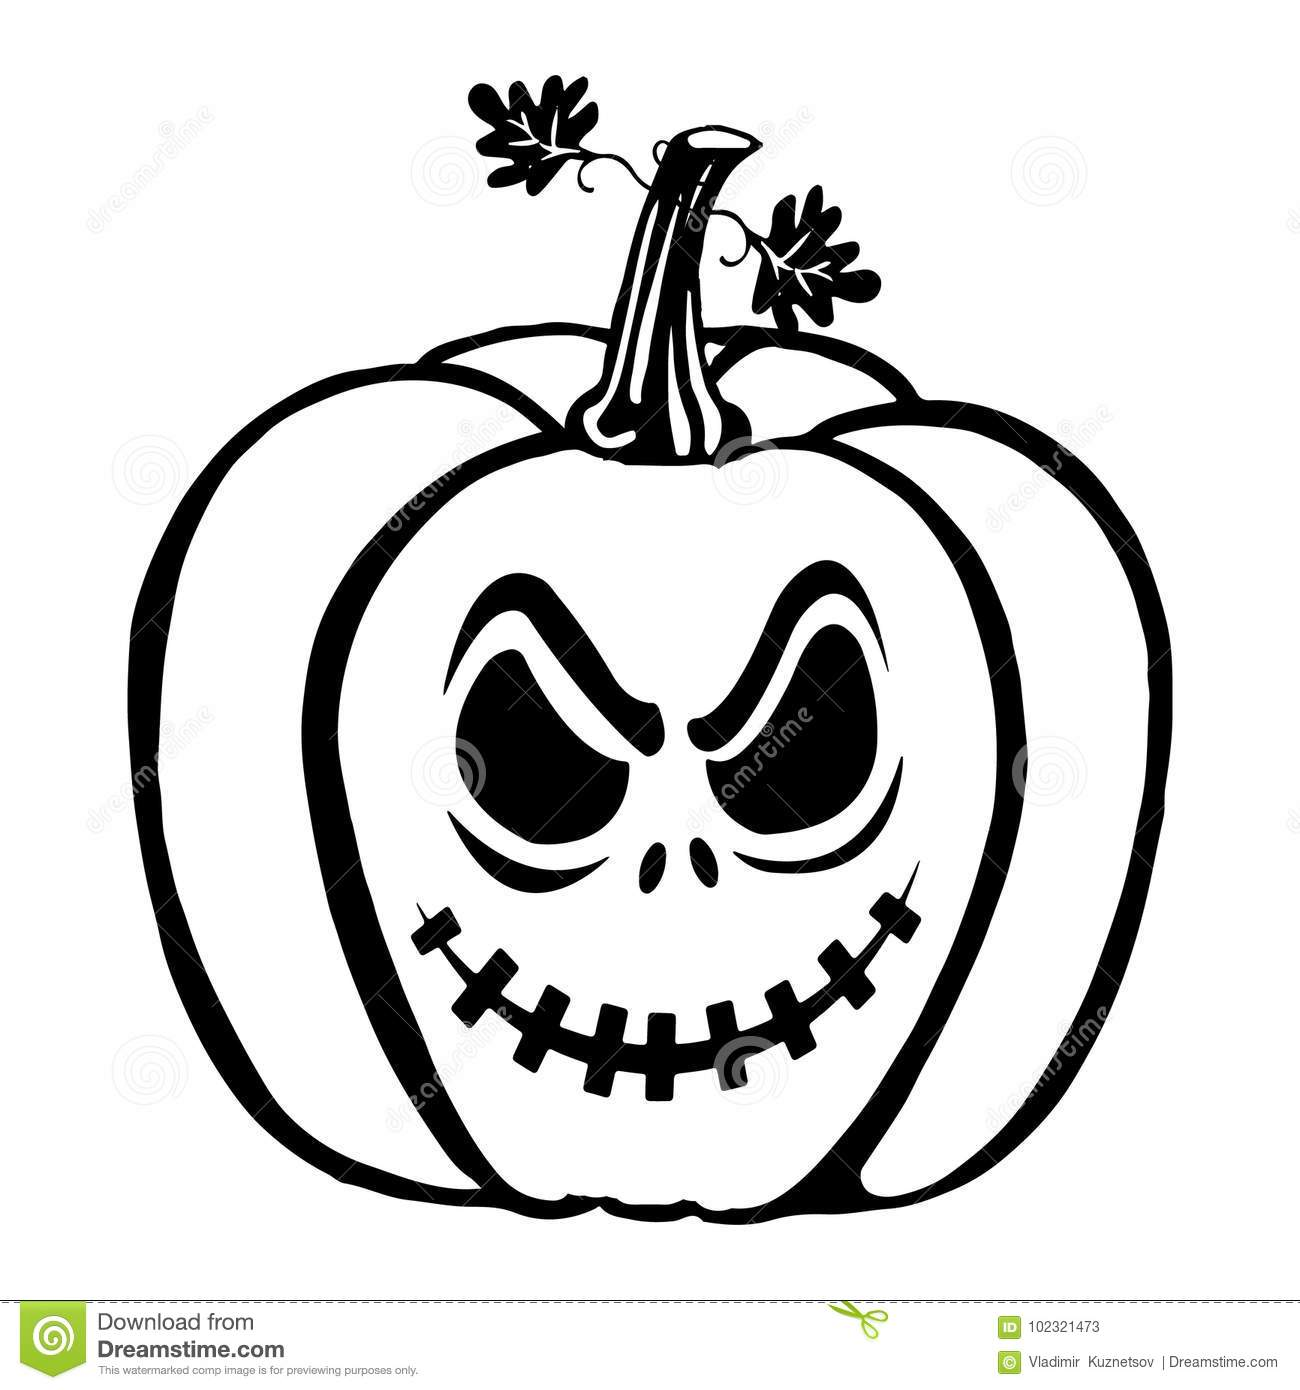 Halloween Pumpkin Silhouette Drawing On White Background